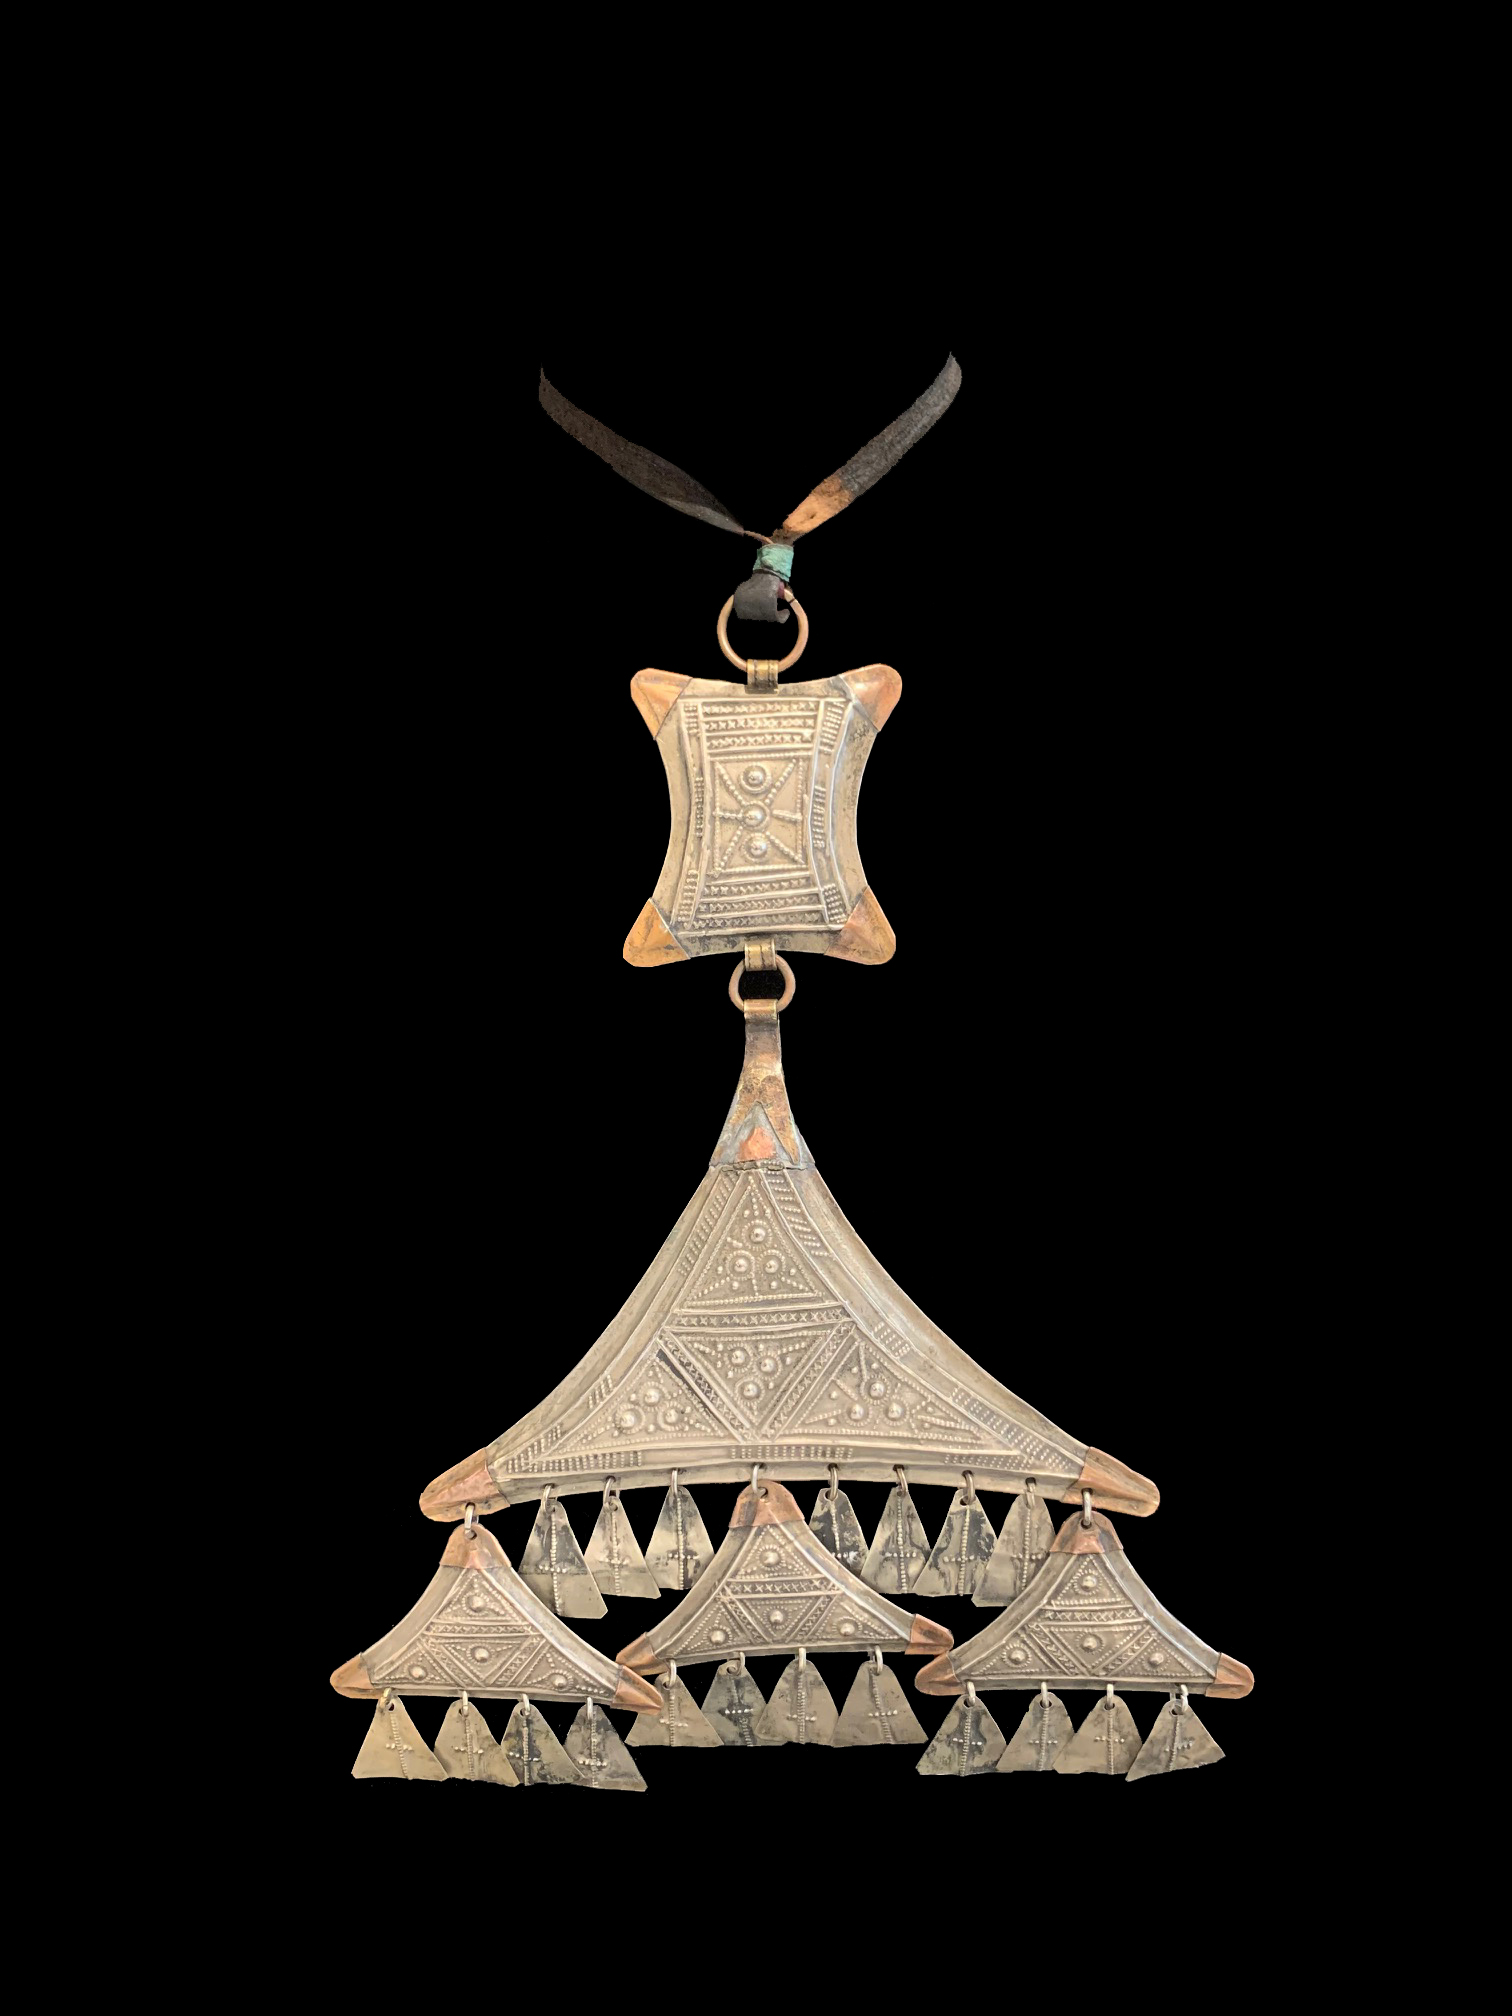 Teraout, a Chest Ornament from the Tuareg Nomads of the South Sahara